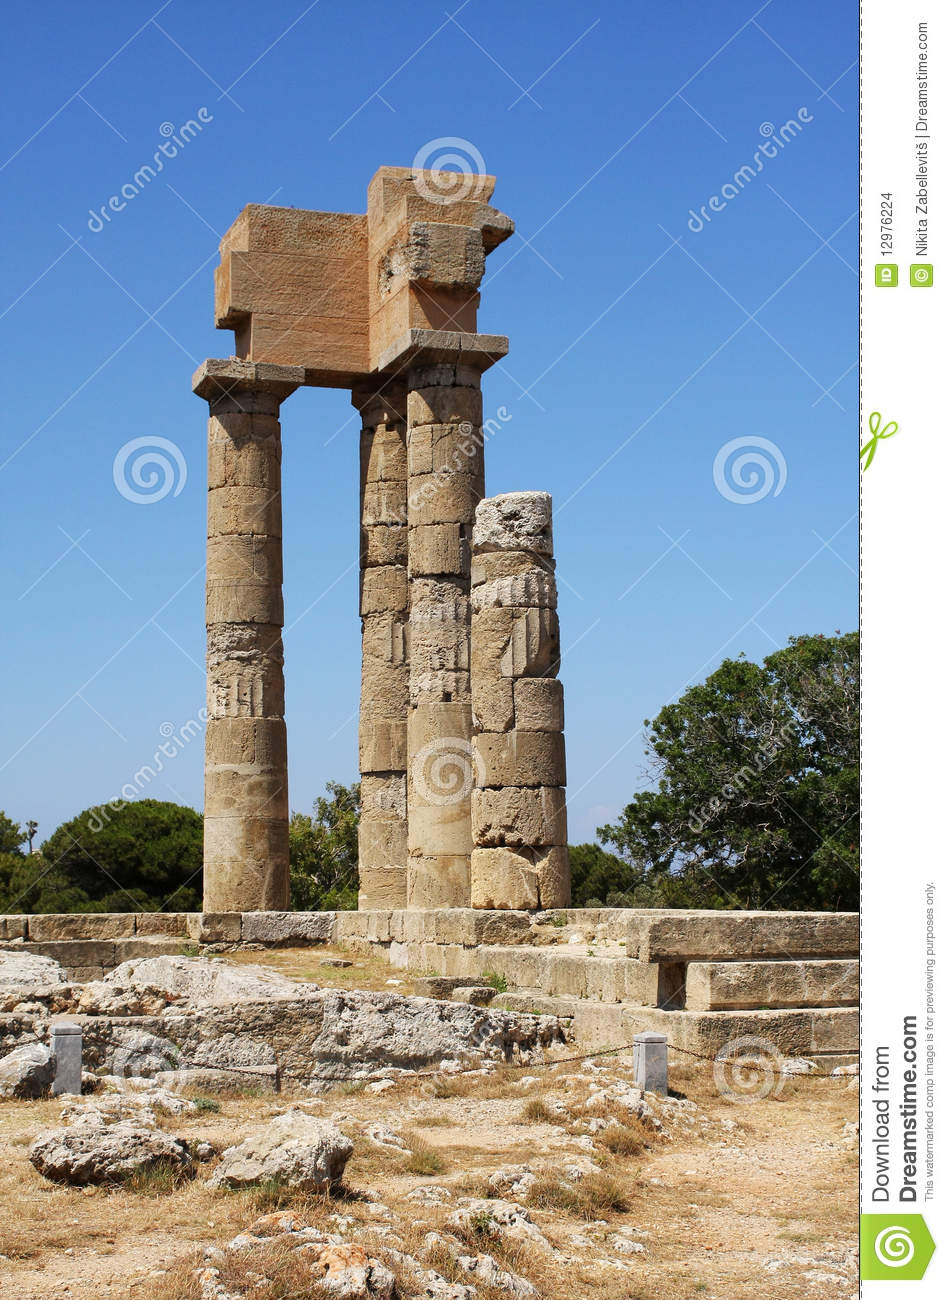 Ancient Ruins - Rhodes, Greece Stock Images - Image: 12976224